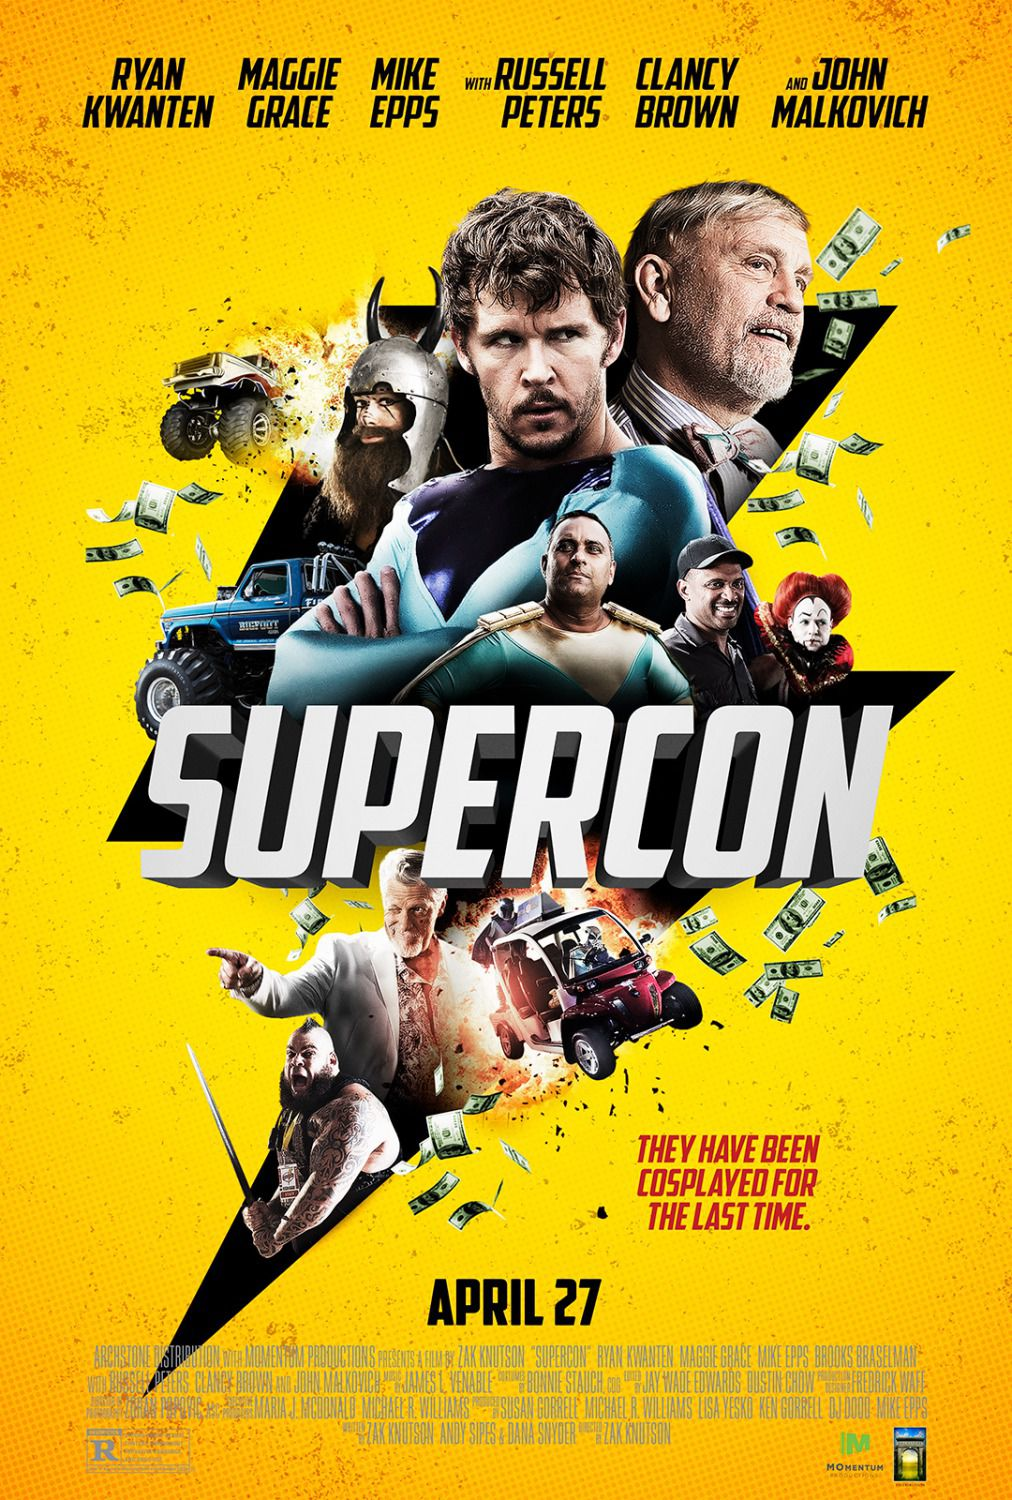 Supercon - have been cosplayed for the last time - comedy film poster 2018